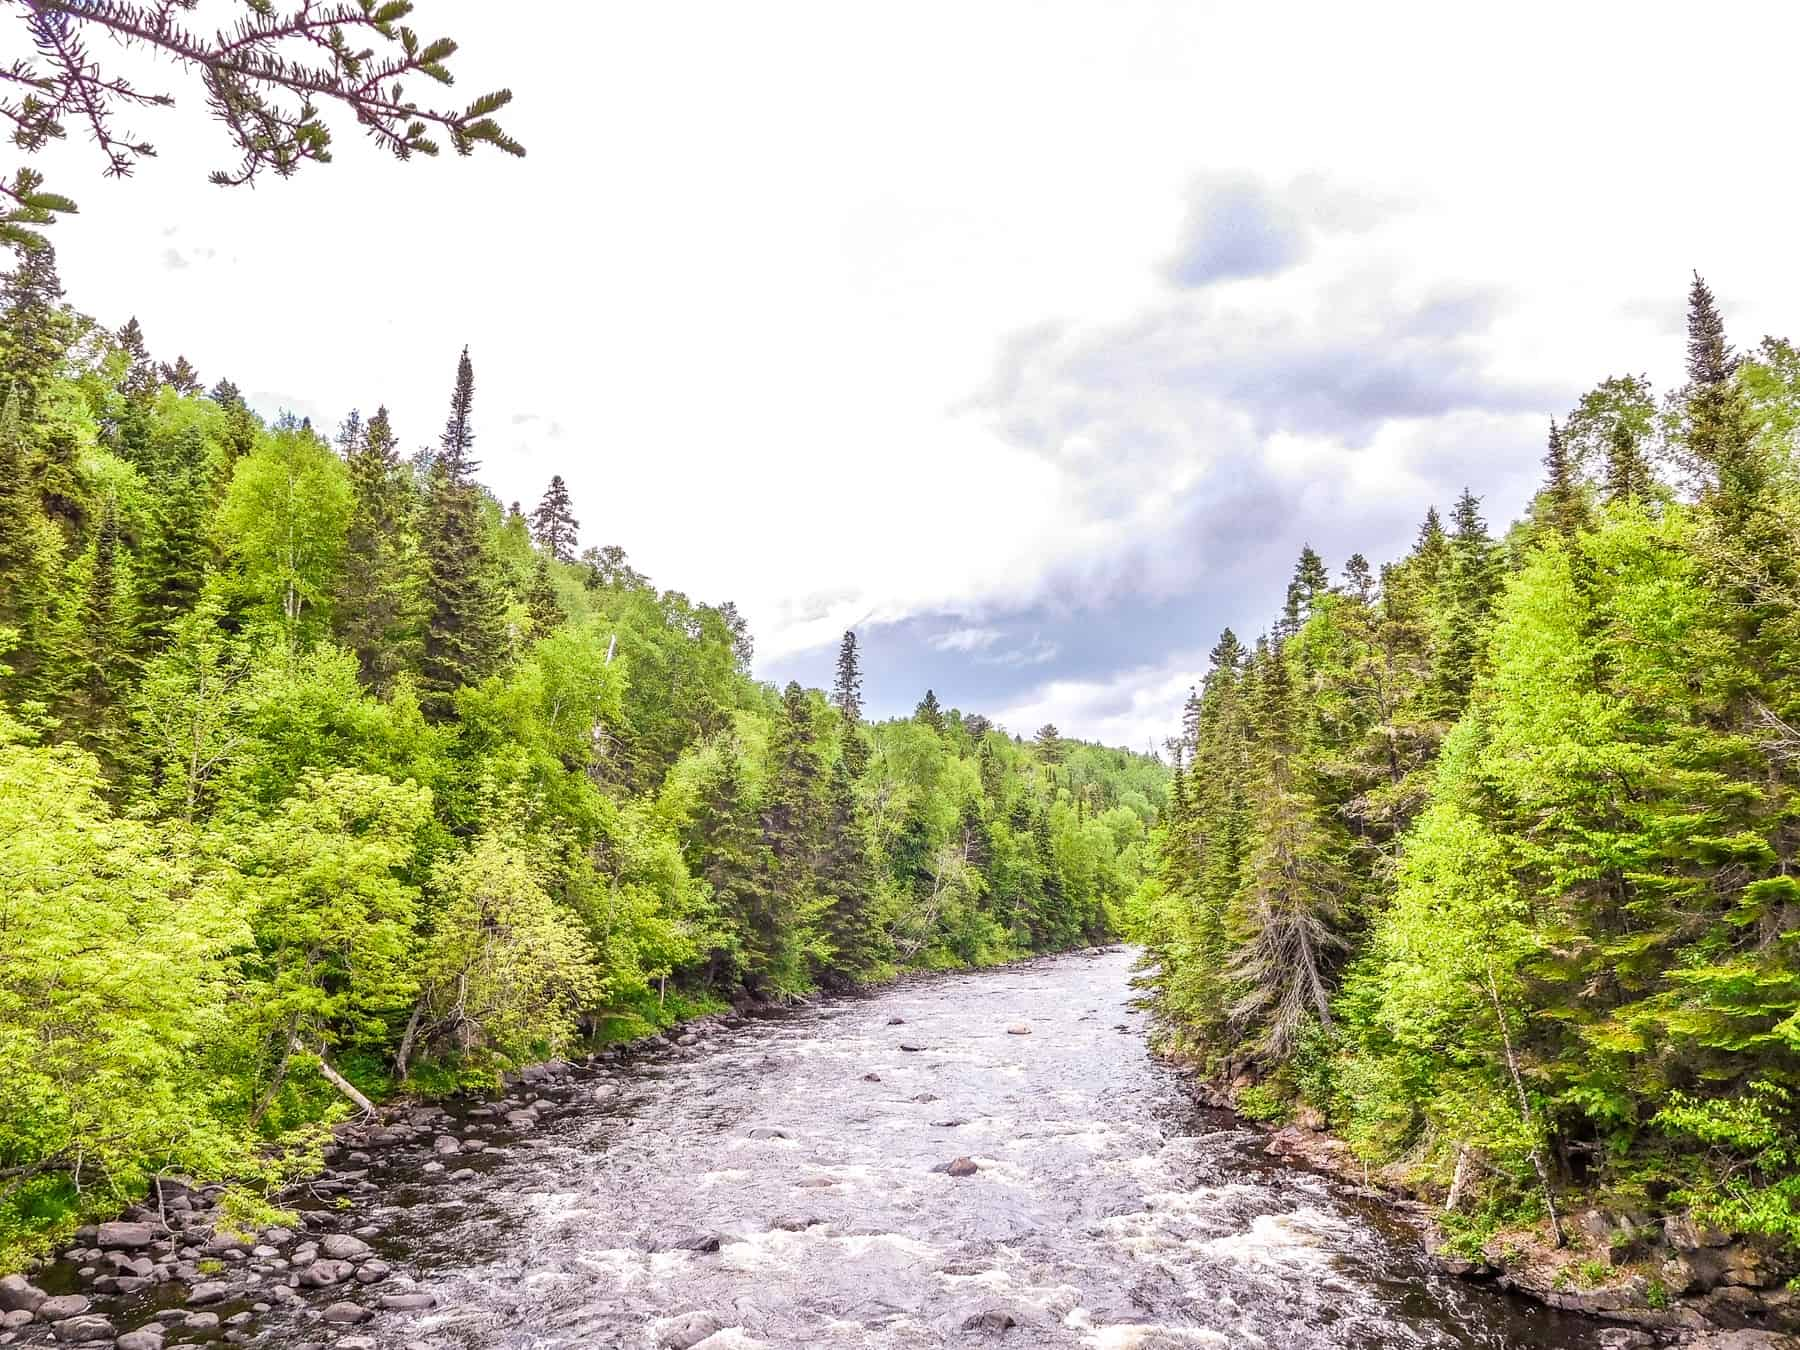 The Brule River runs through Judge CR Magney State Park